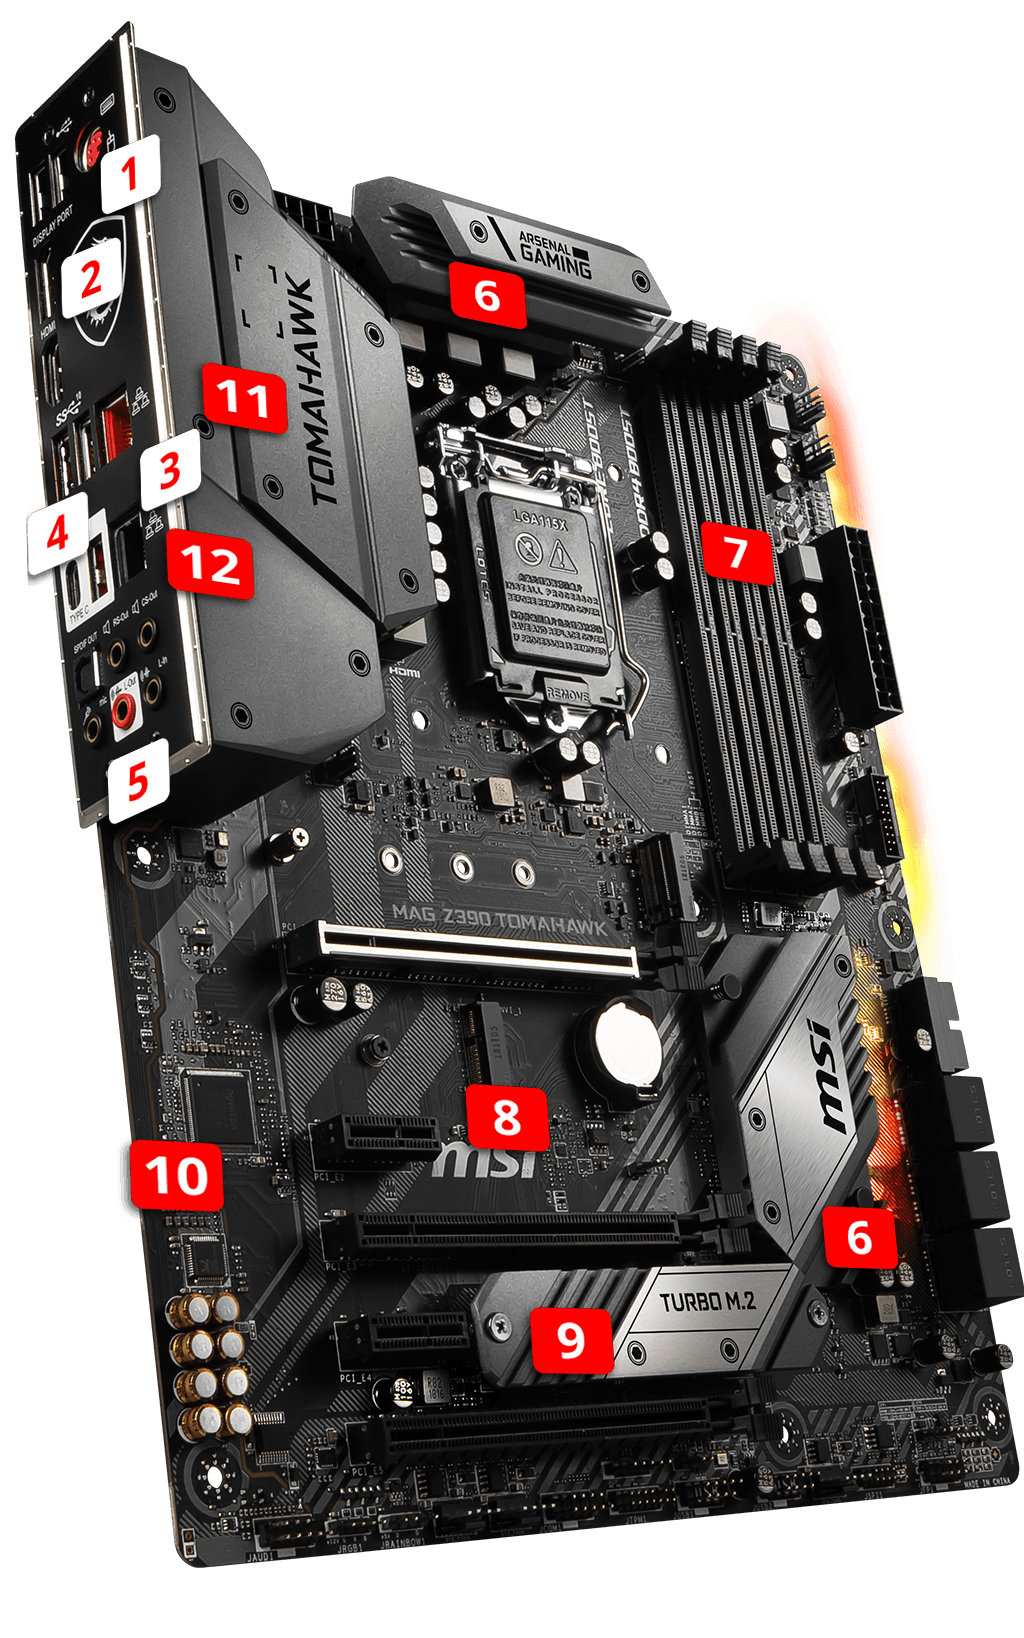 MSI MAG Z390 TOMAHAWK overview